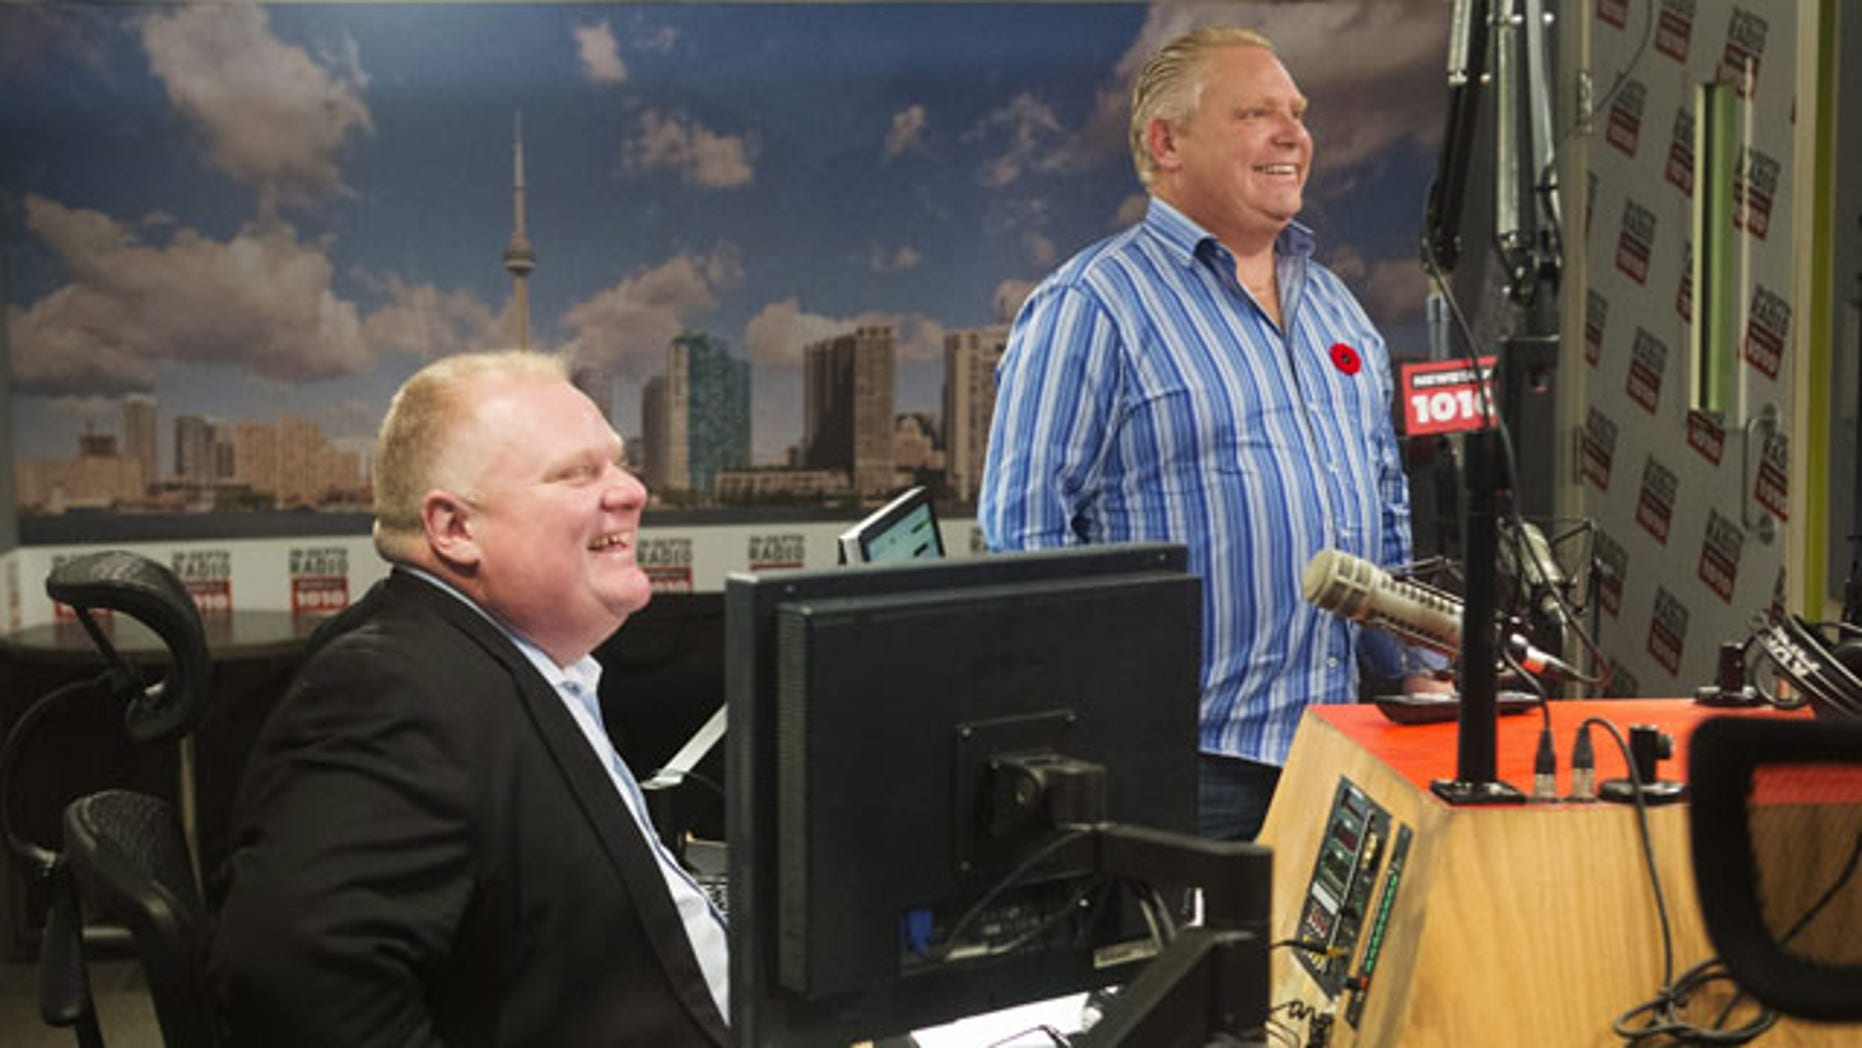 November 3, 2013: Toronto Mayor Rob Ford and his brother, Toronto city councillor Doug Ford, right, appear on a radio show in Toronto. (AP Photo/The Canadian Press, Mark Blinch)